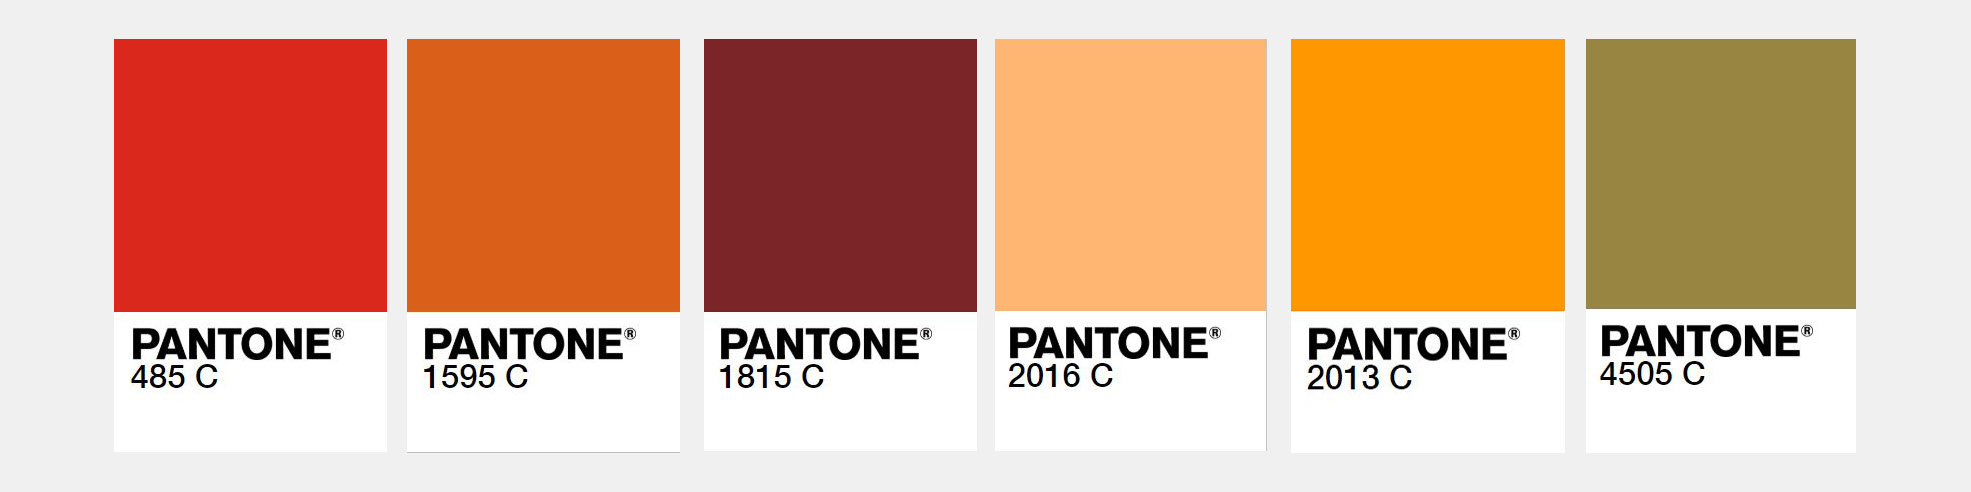 WHITEHOUSE_PANTONE_1